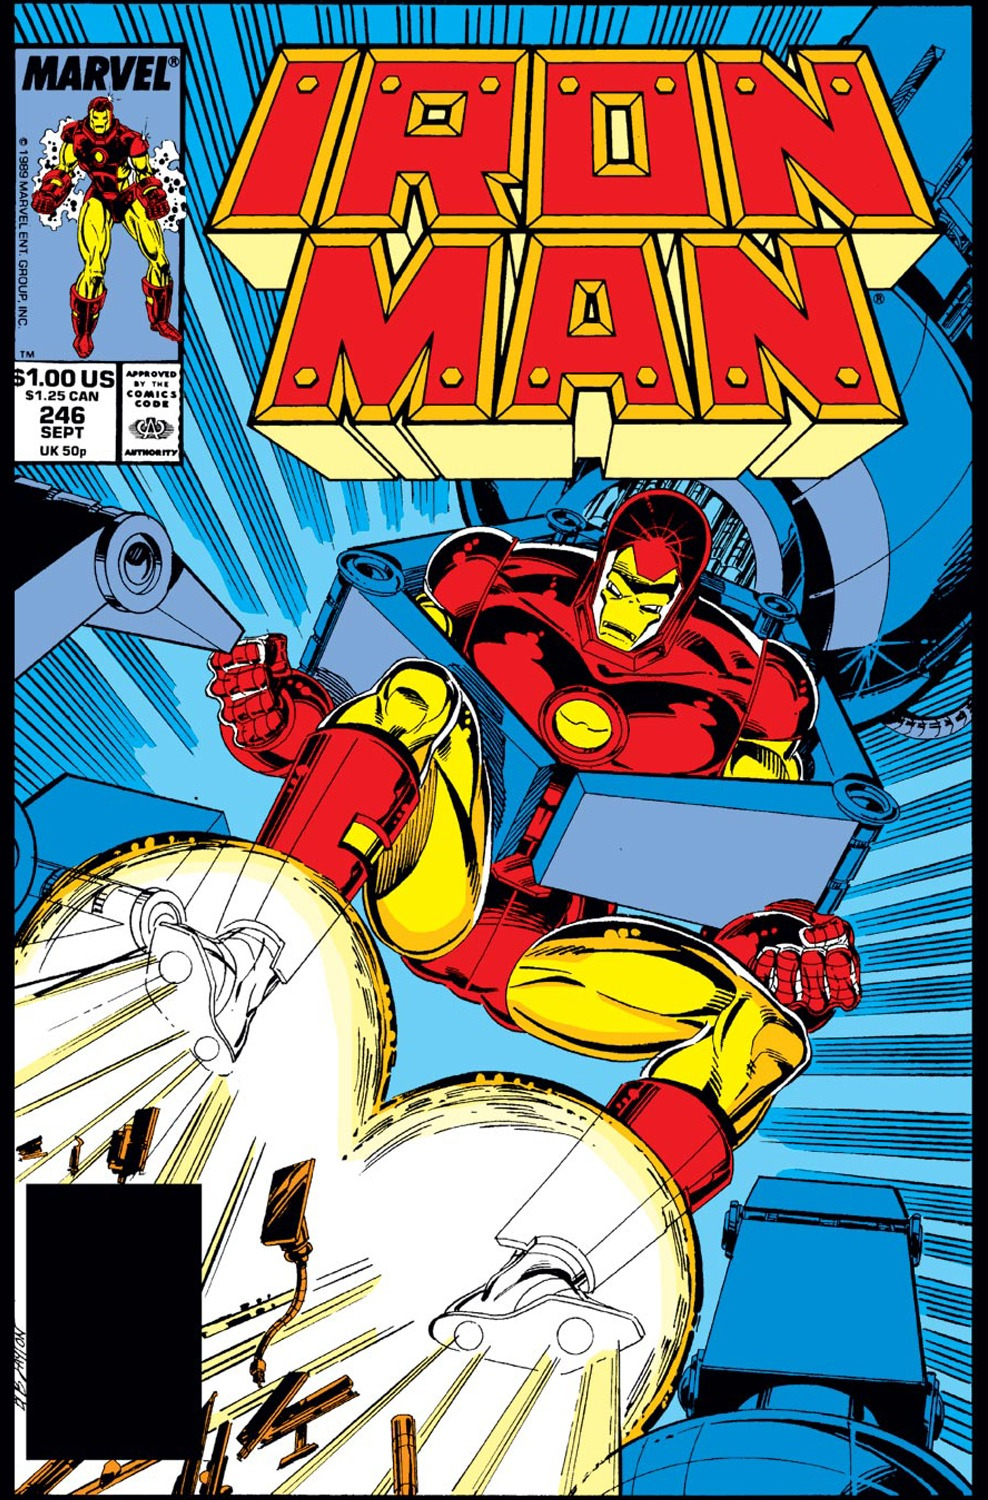 Iron man vol 1 246 marvel database fandom powered by wikia - Iron man 1 images ...